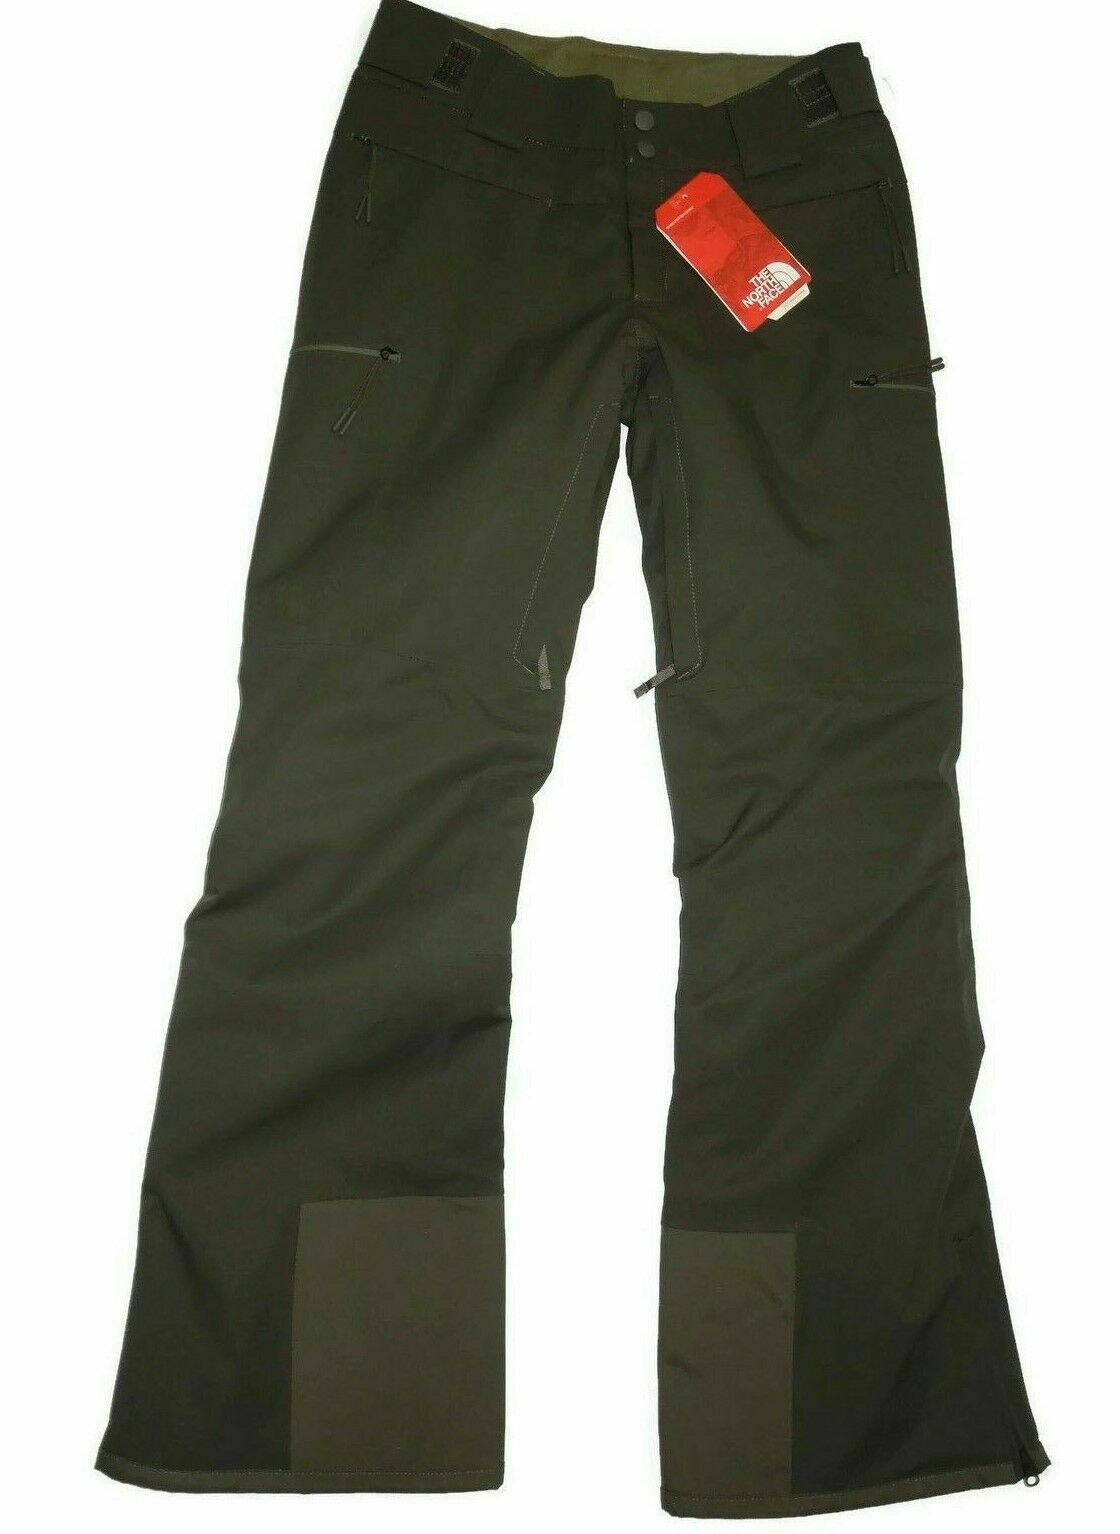 The North Face Womens Powdance Insulated Ski Snow Winter Pants SMALL Green